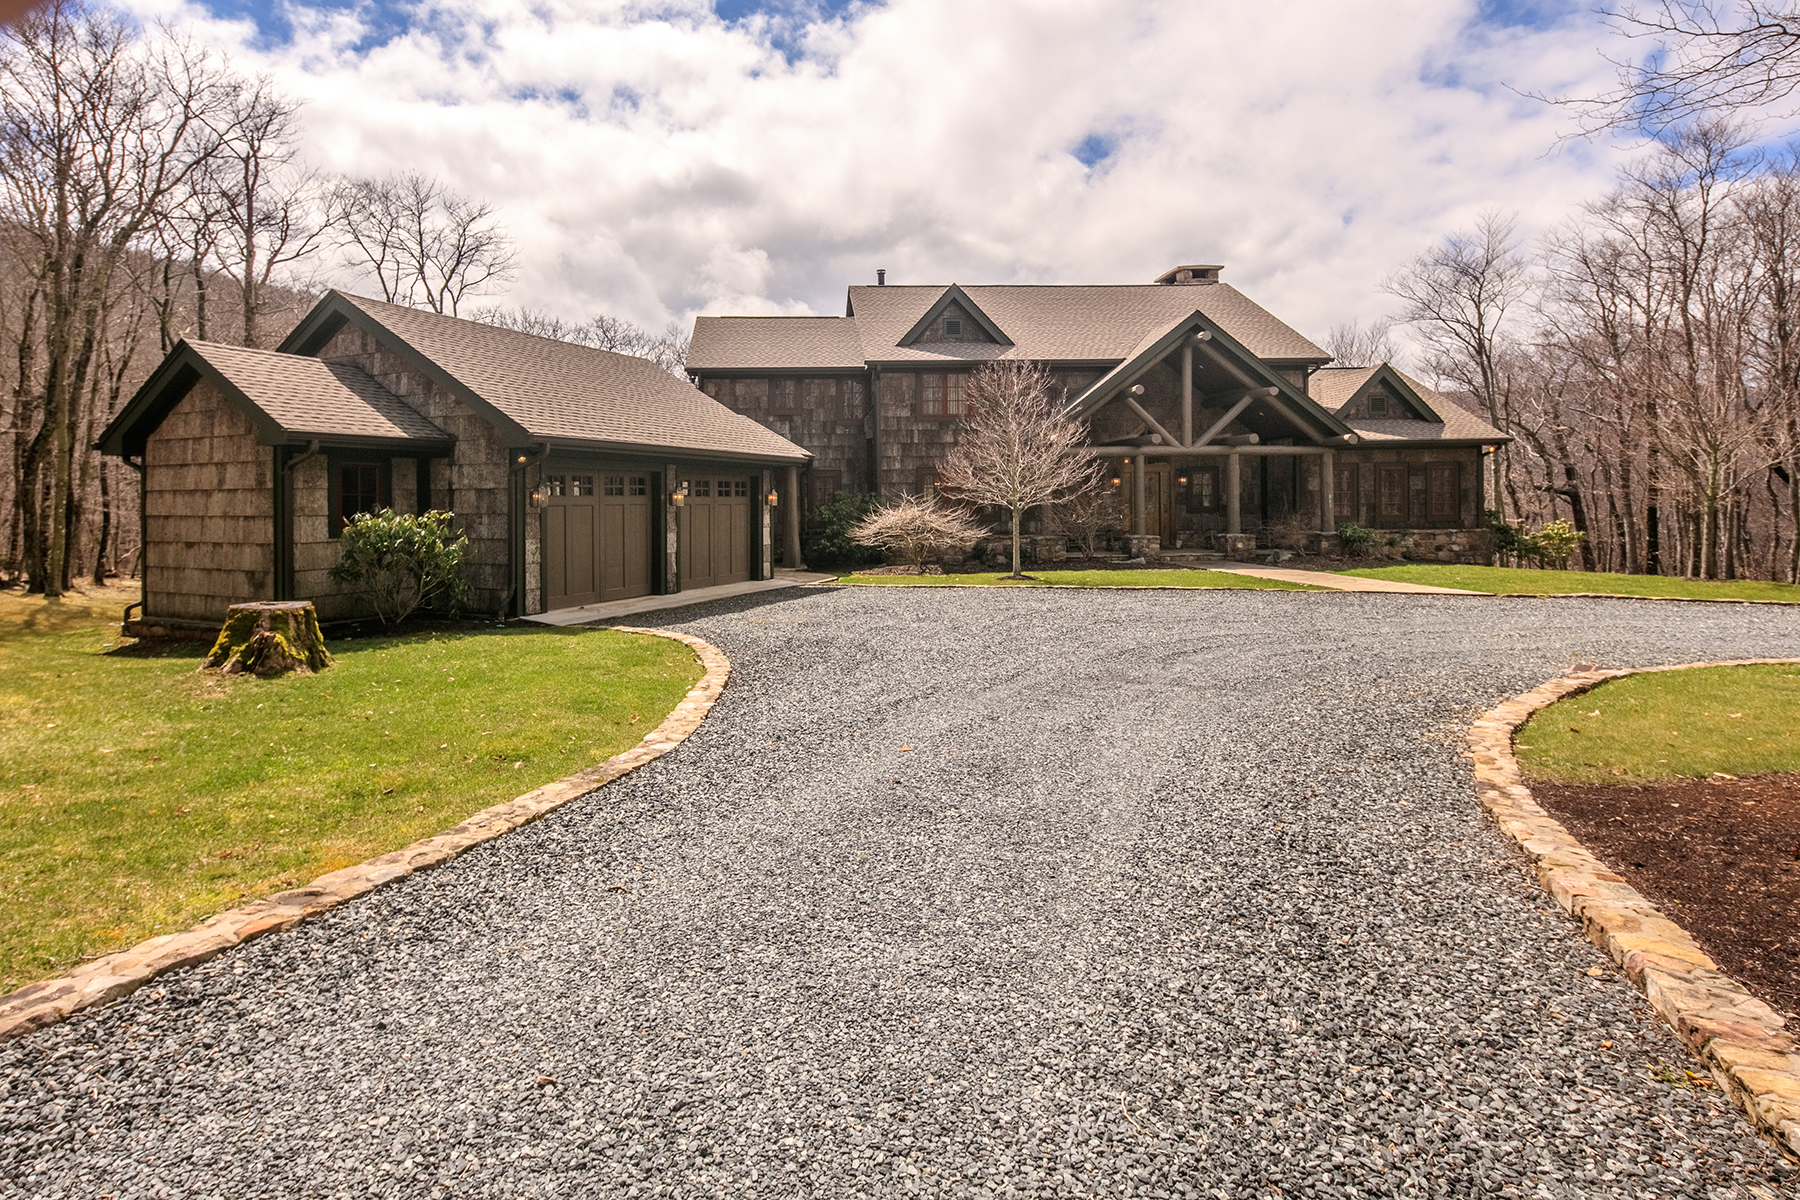 Single Family Home for Active at HEADWATERS OF CRESTON 888 Longhope Trail Creston, North Carolina 28615 United States